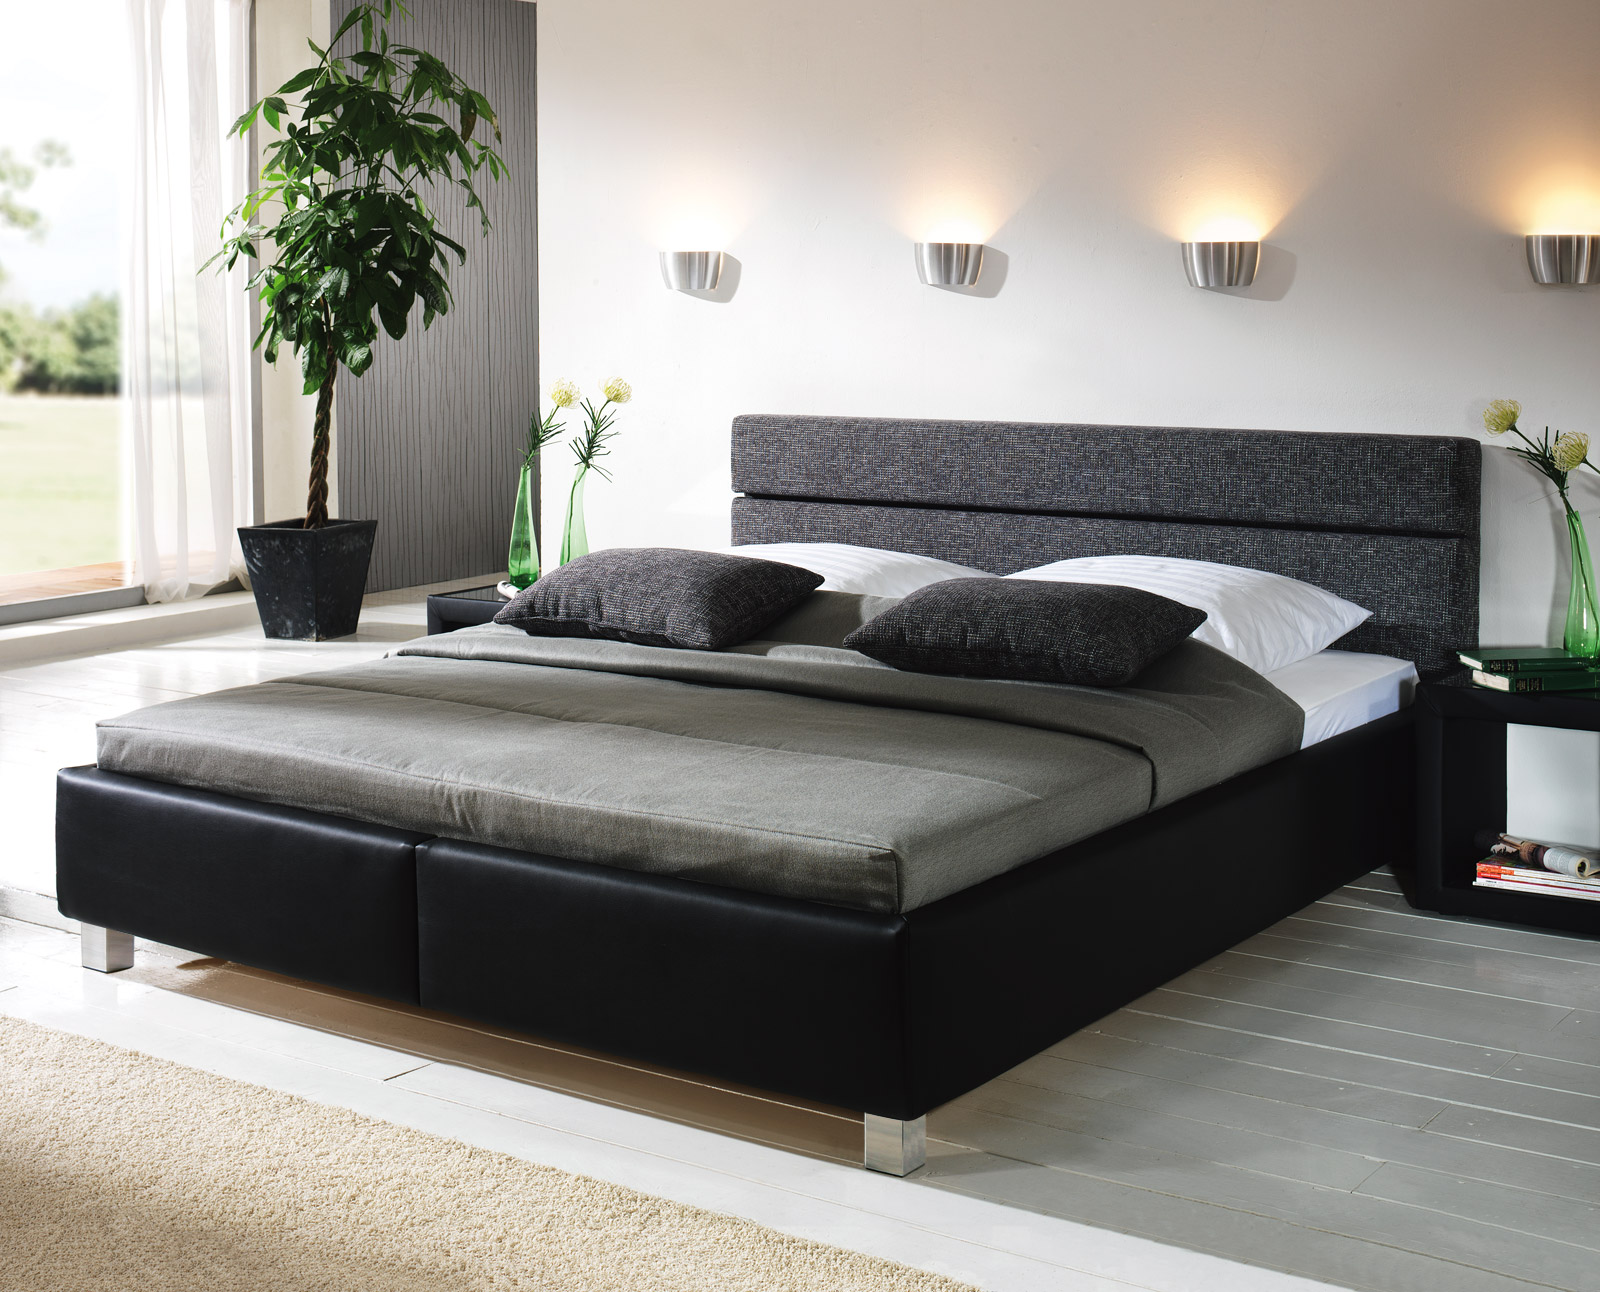 hochwertiges bett fur schlafzimmer qualitatsgarantie m belideen. Black Bedroom Furniture Sets. Home Design Ideas